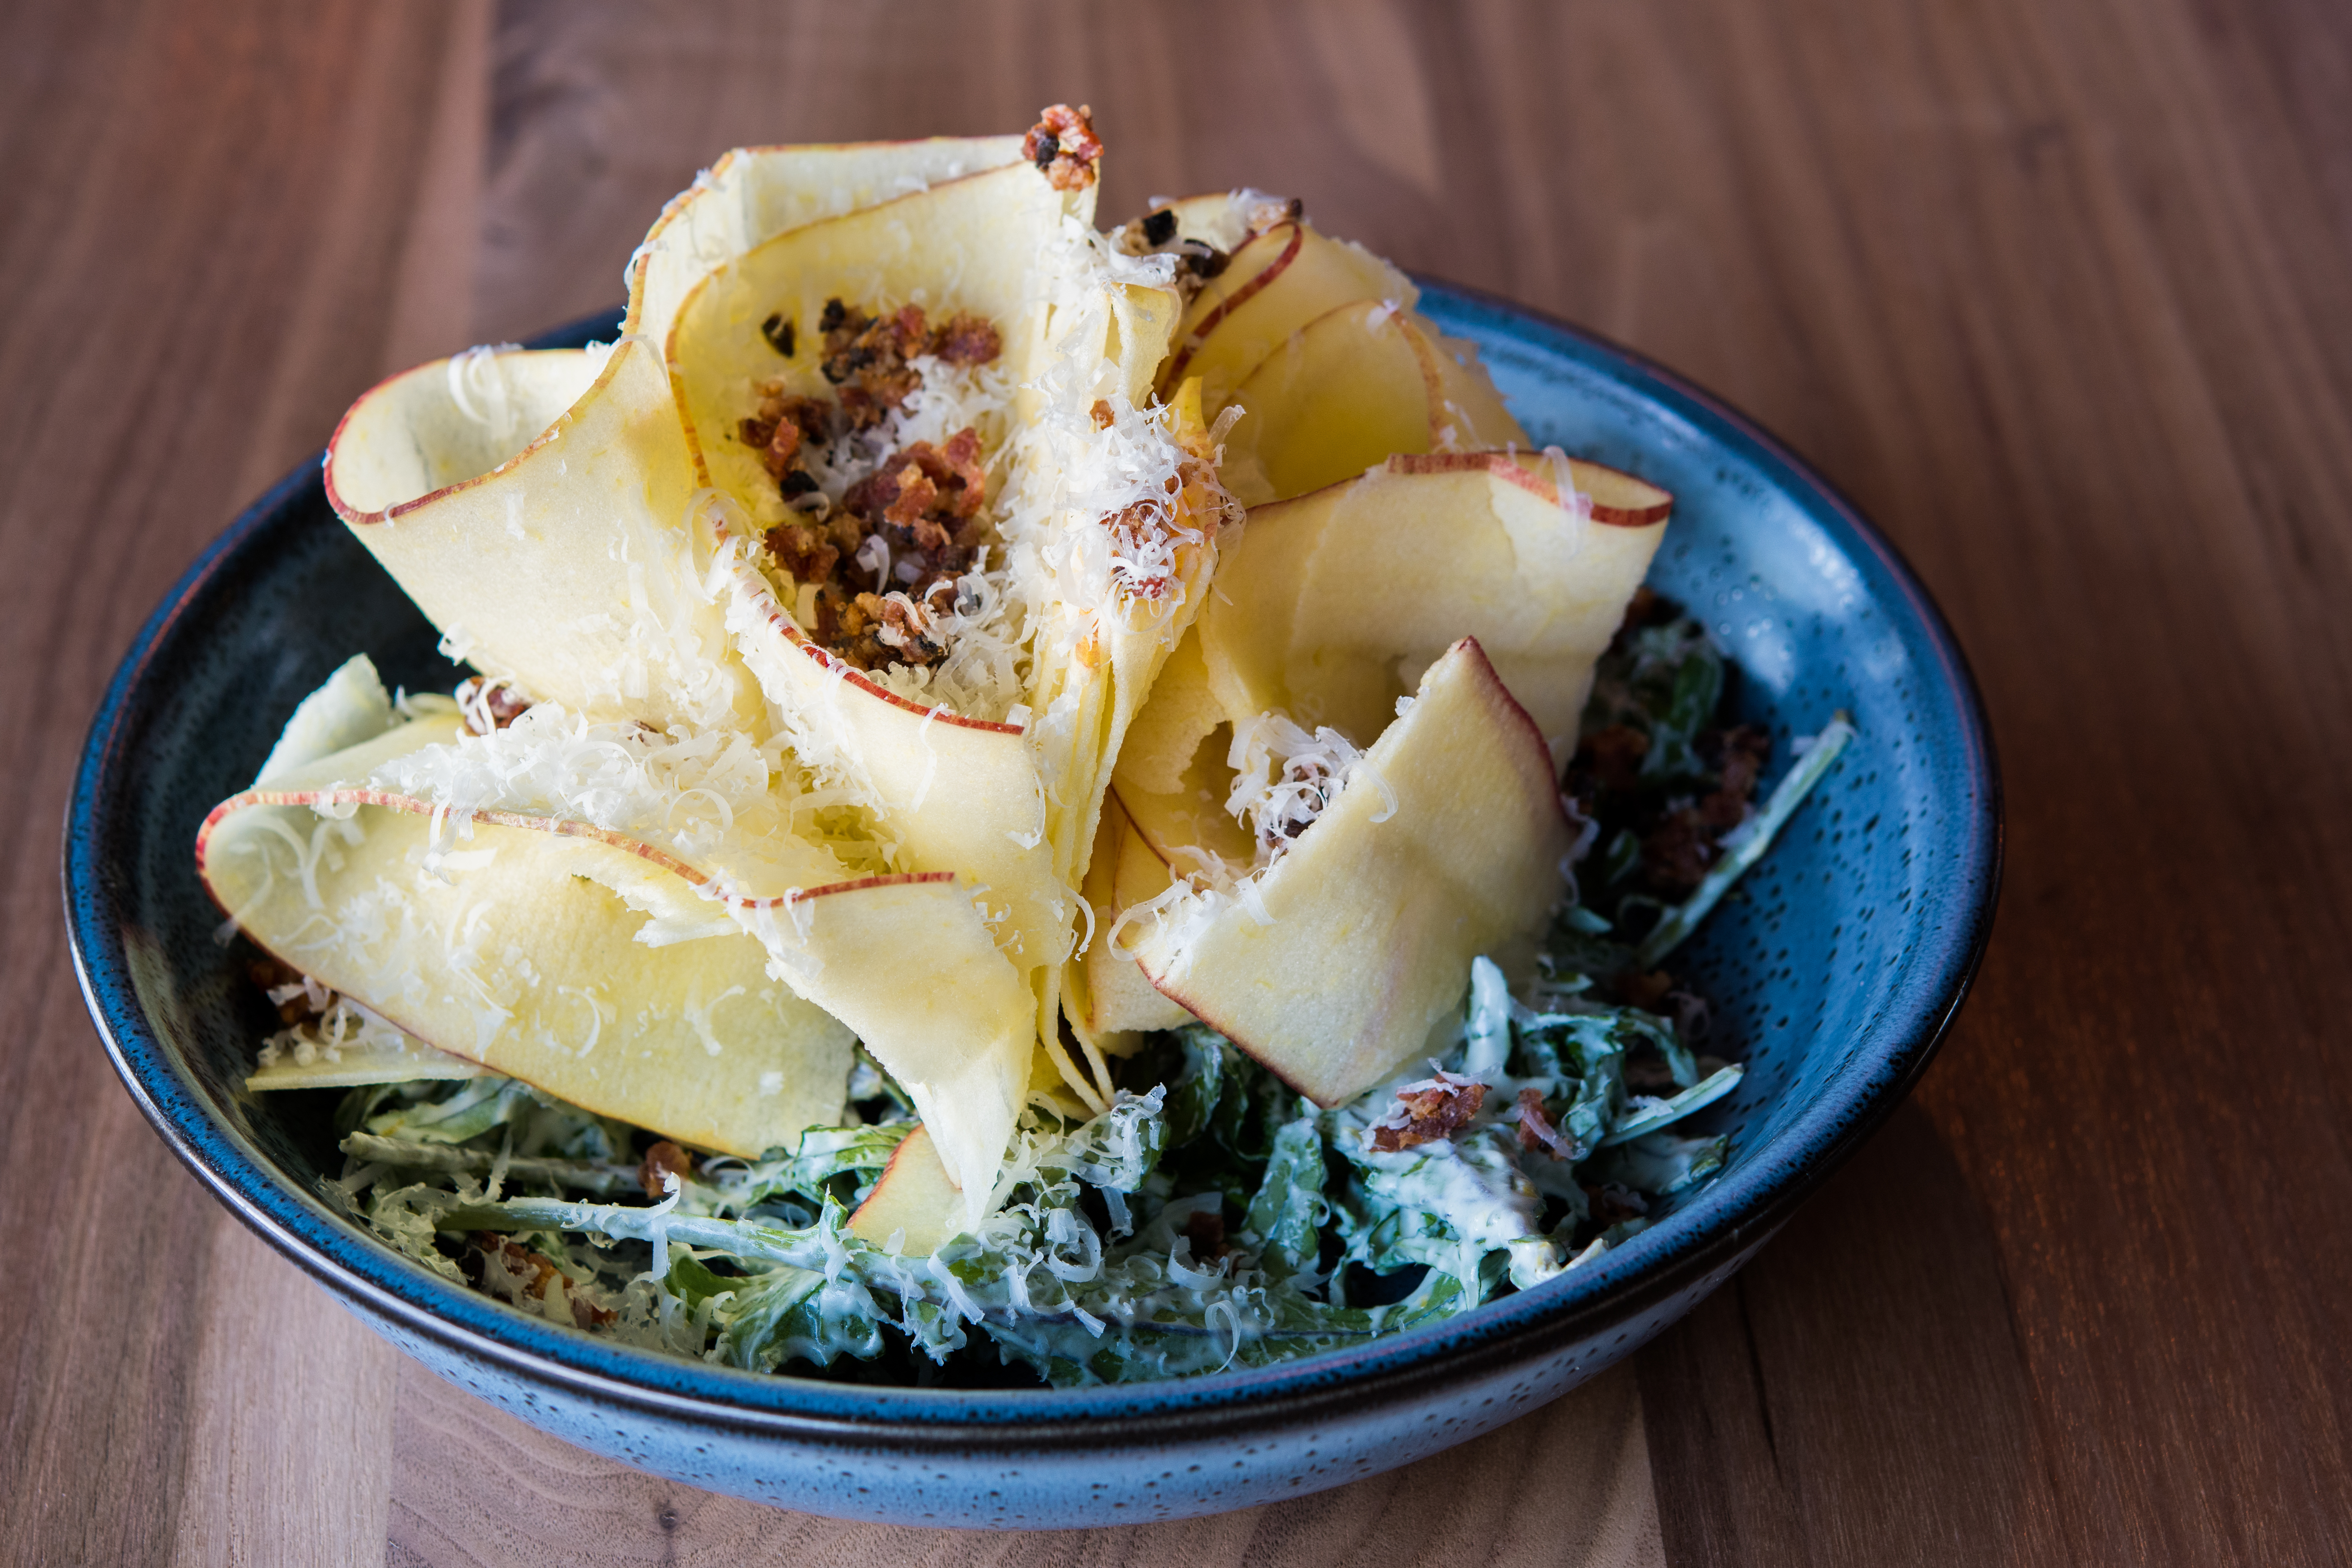 Fresh Apple Salad with bacon, mint, kale and creamy Parmesan dressing (Image courtesy of Fire Vine / Aerlume).